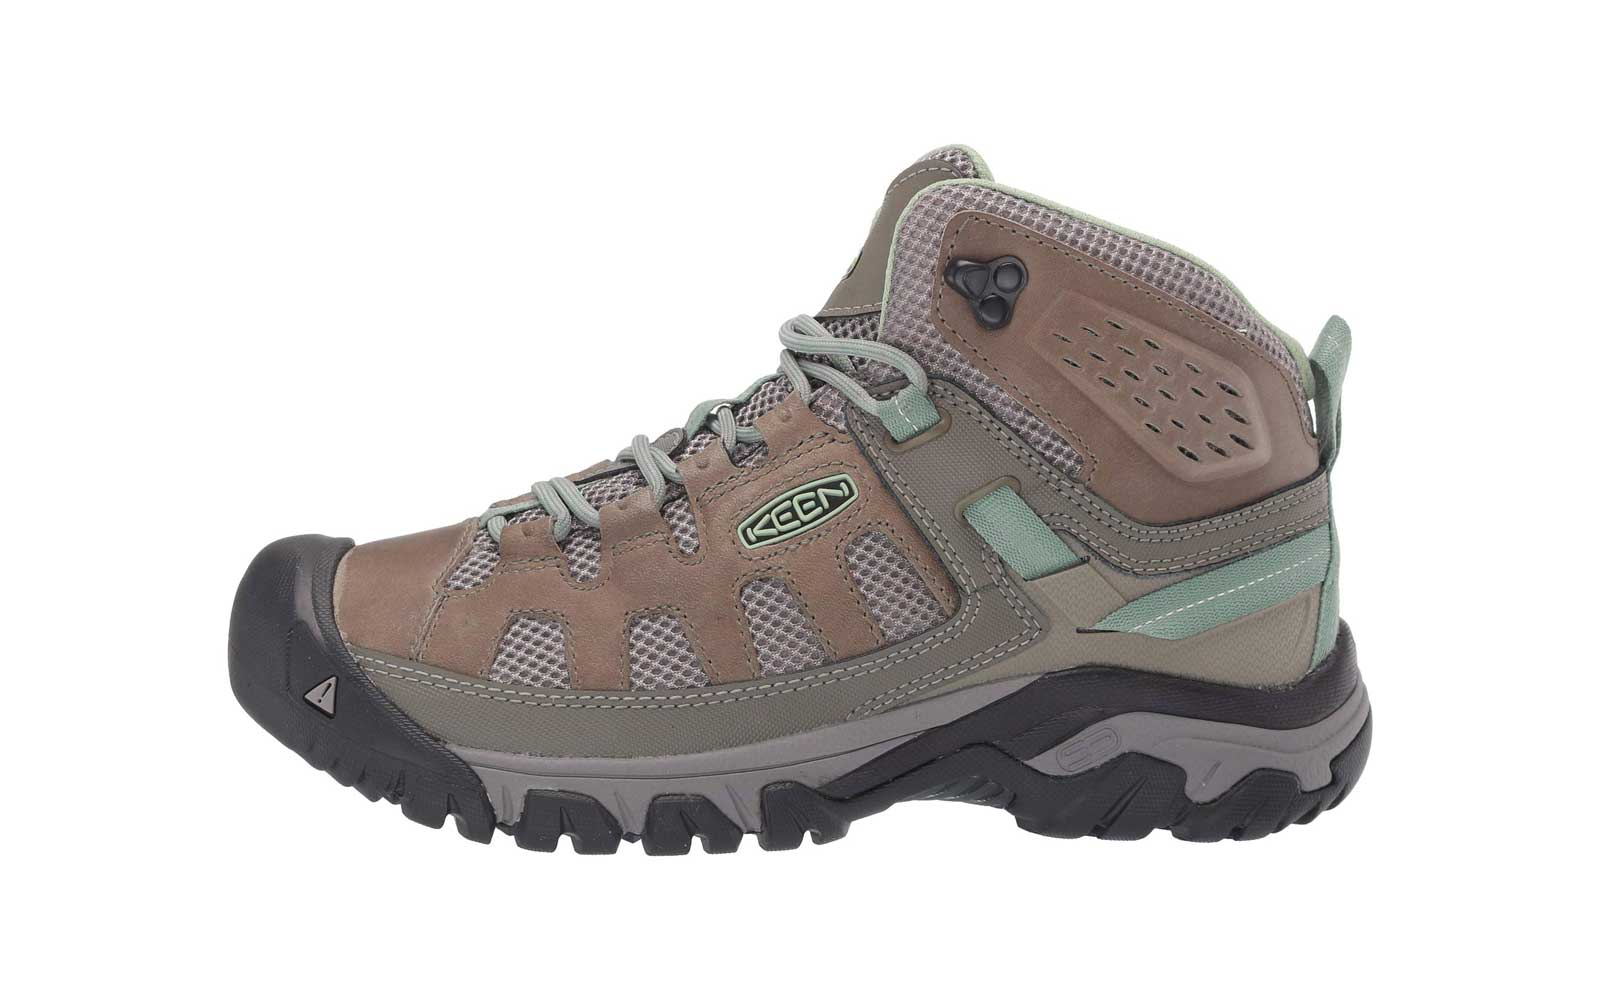 The 18 Best Hiking Shoes and Boots for Women in 2020 | Travel + Leisure |  Travel + Leisure